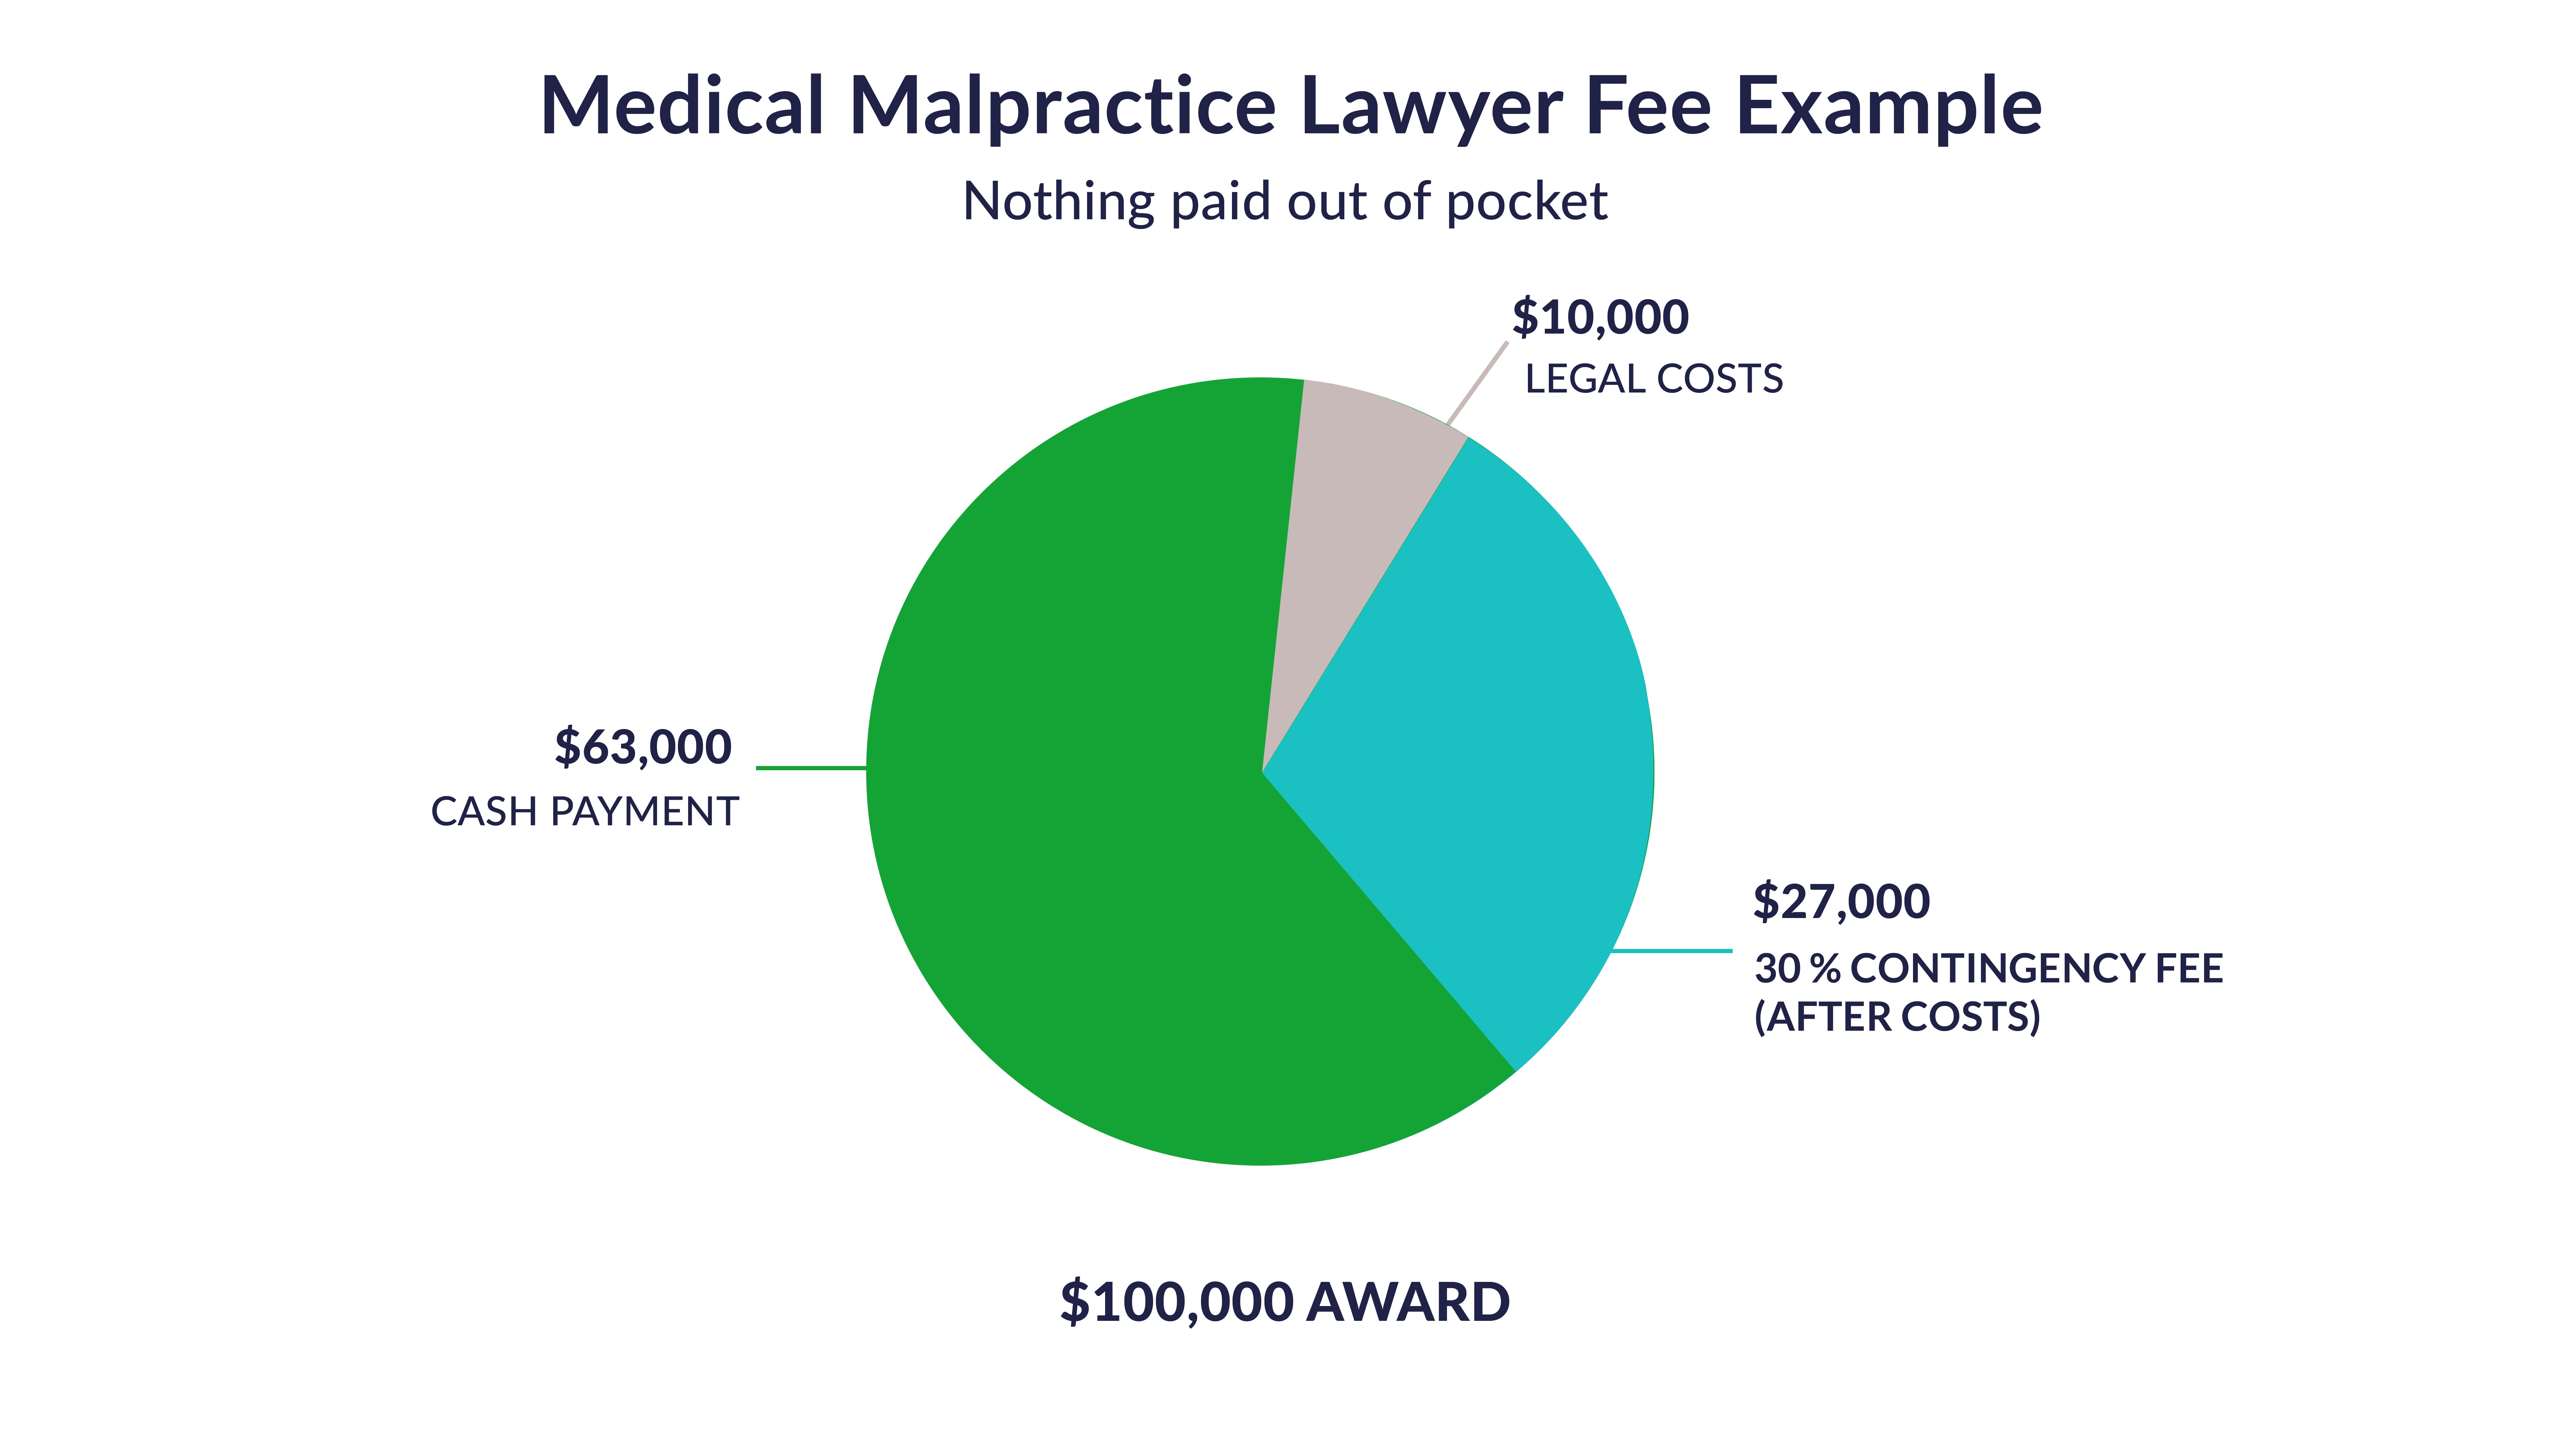 Pie chart example of a medical malpractice lawyer fee